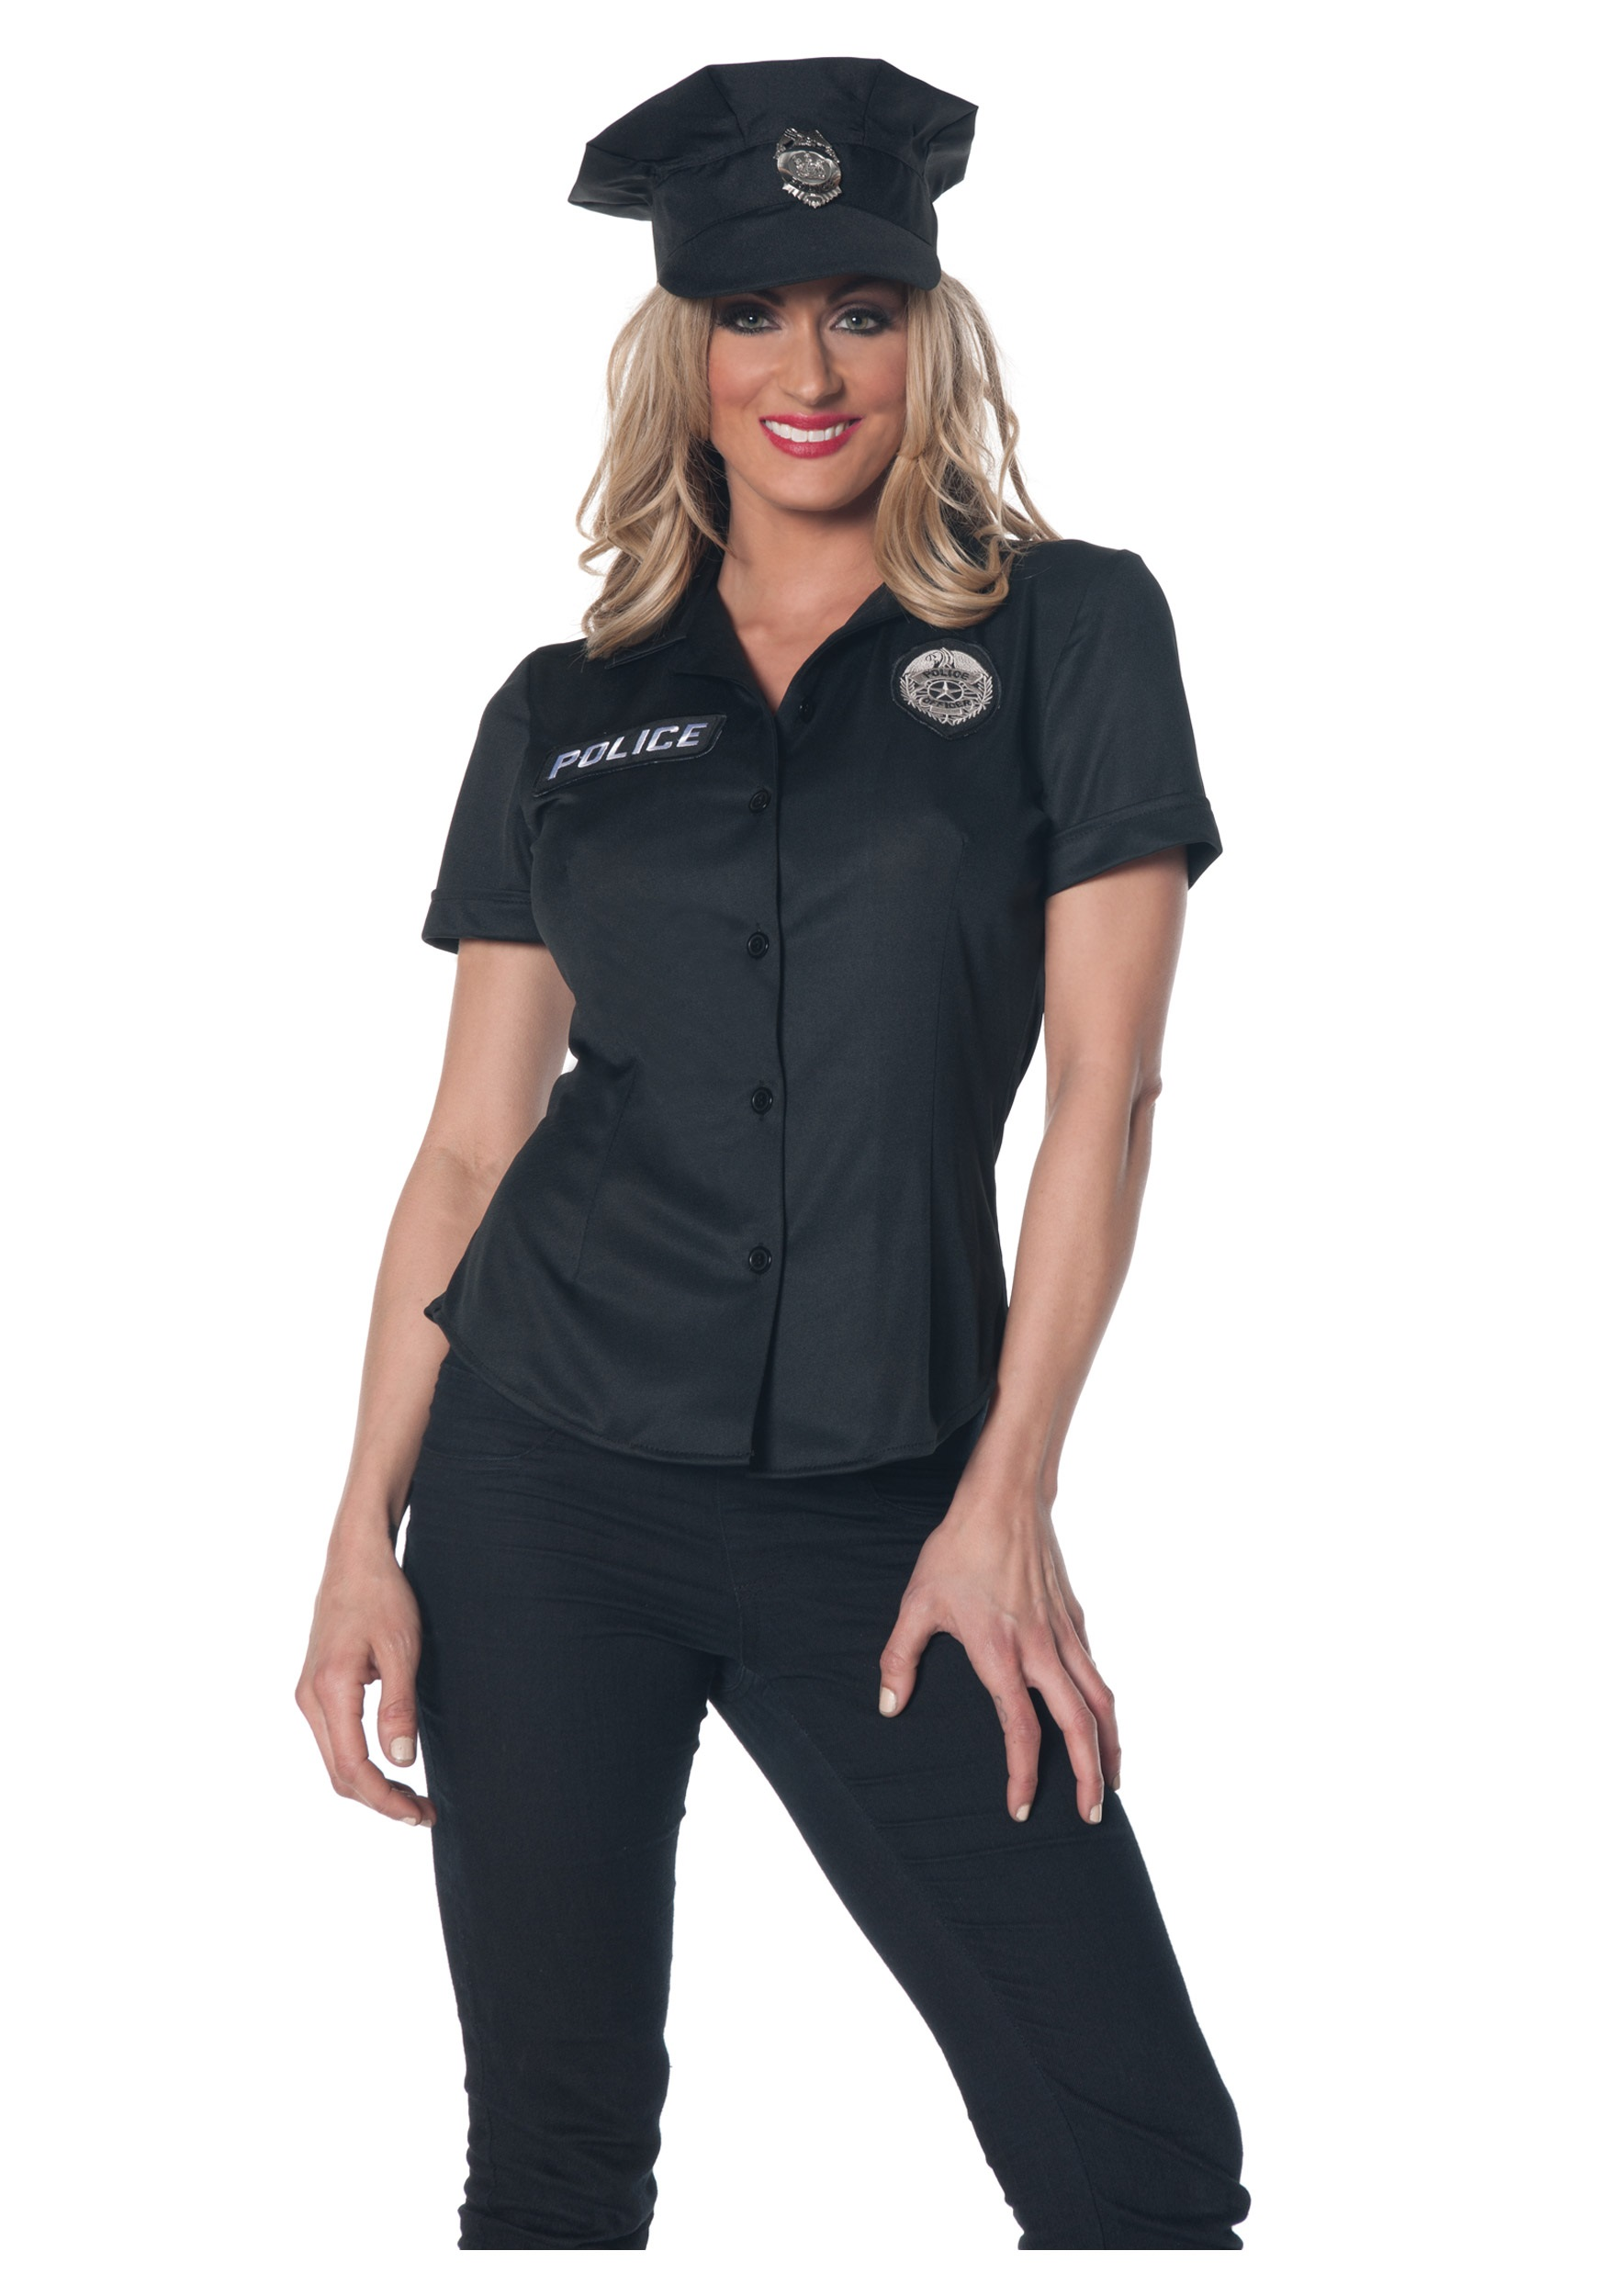 Womens Police Shirt Costume  sc 1 st  Halloween Costumes : cops costume  - Germanpascual.Com